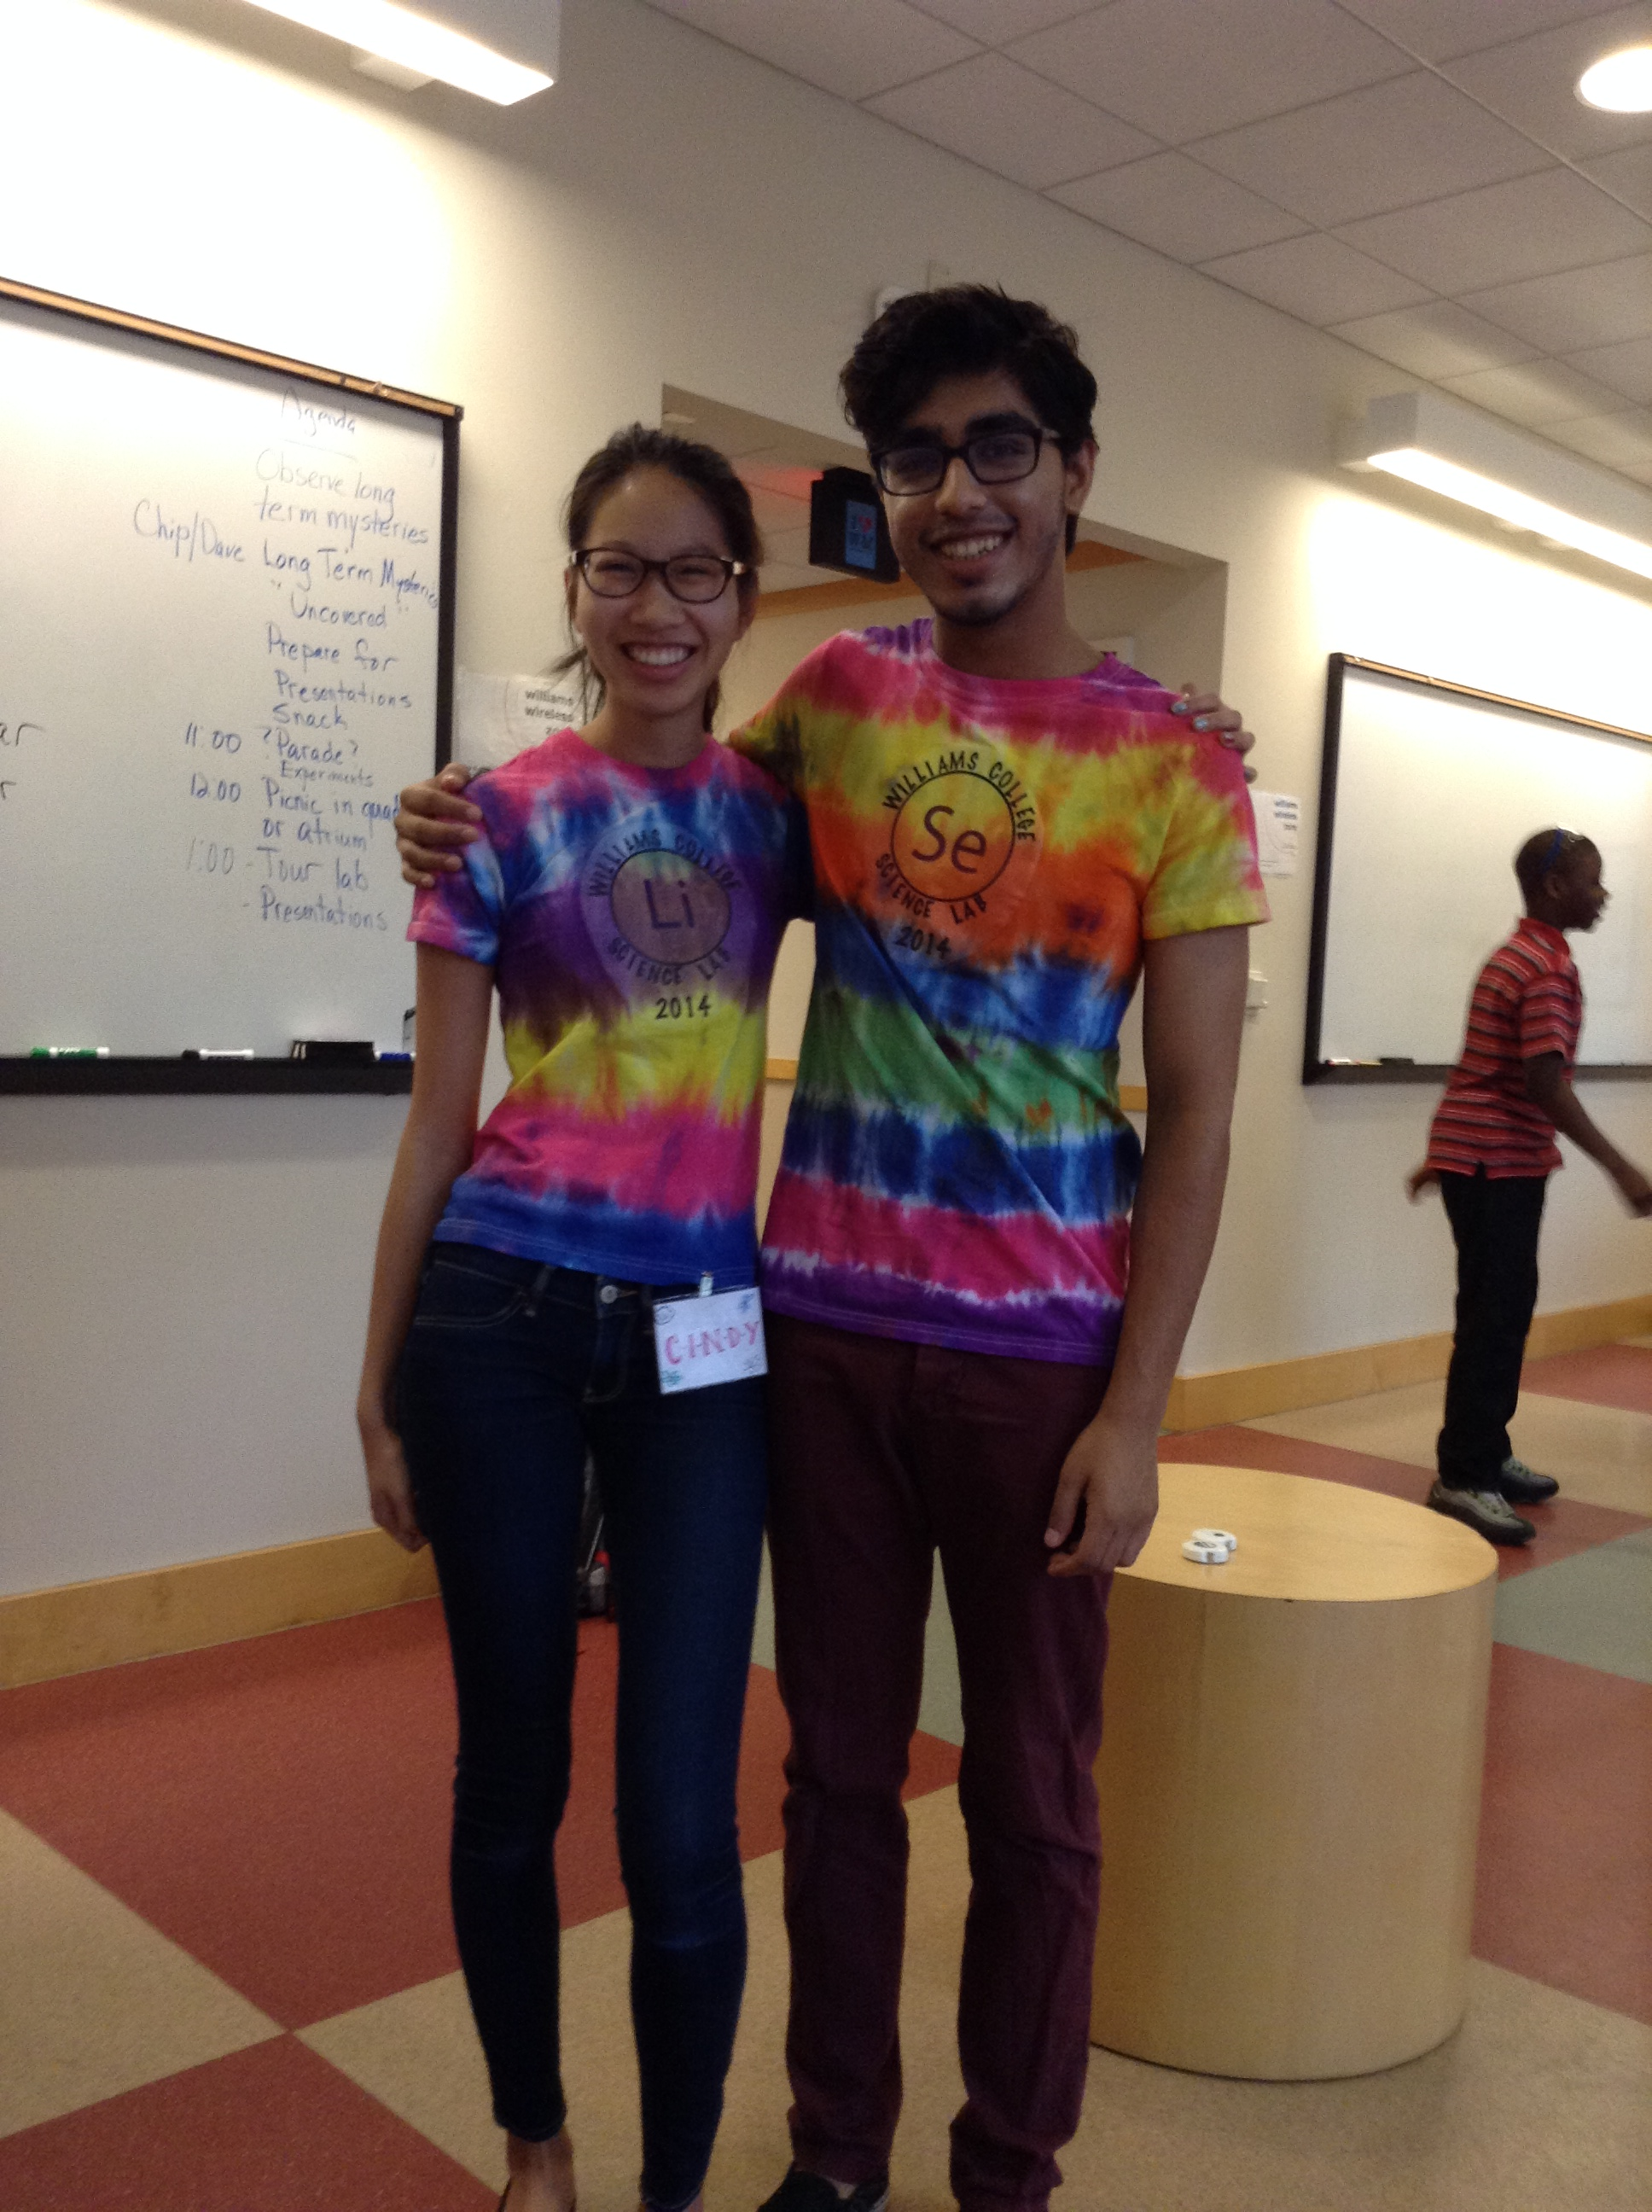 Cindy and Dvivid worked at a science camp for kids for two weeks!